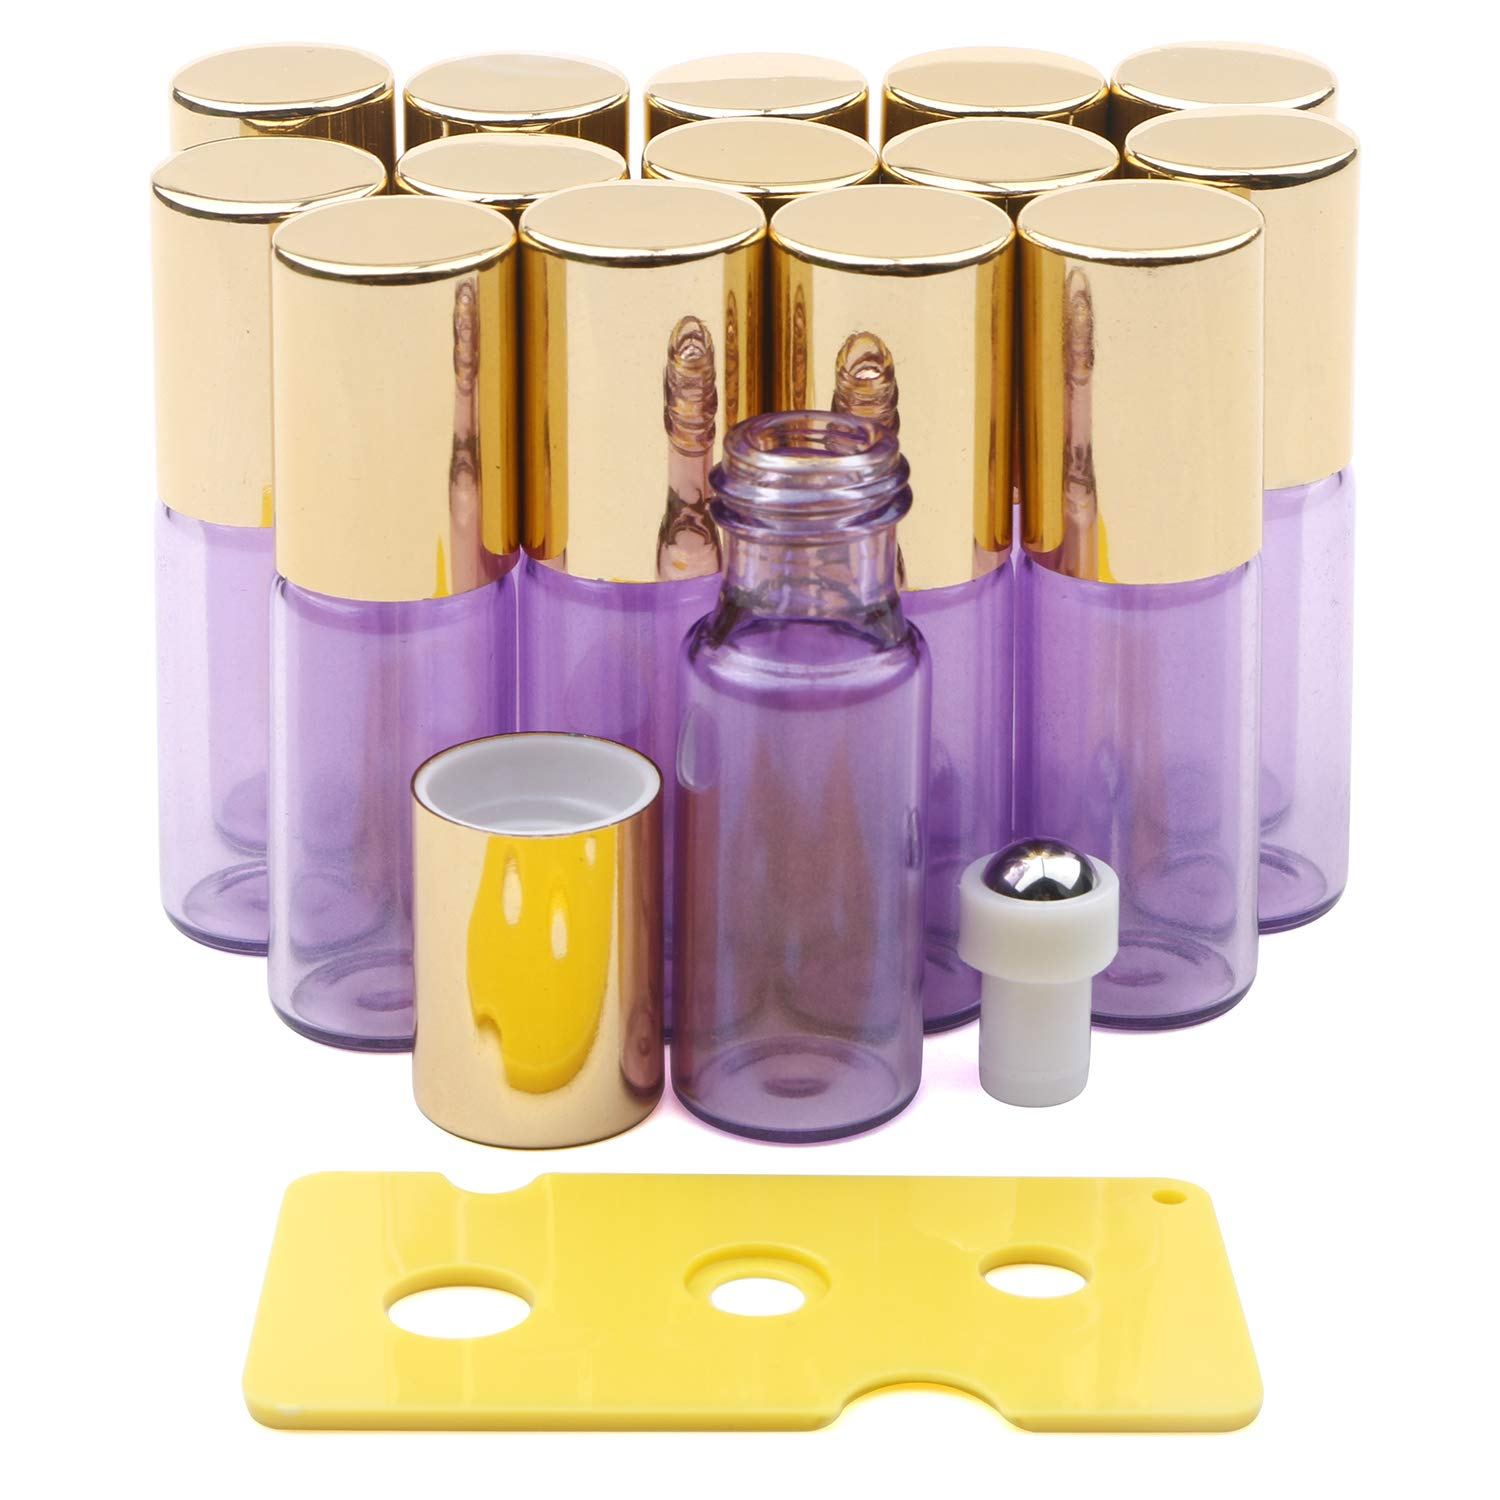 Kesell Essential Oil Roller Bottles Set with Stainless Steel Balls, 15 Pack 5ml Leakproof Glass Bottle with 15 Rollerballs for Perfume & 1 Opener by Kesell